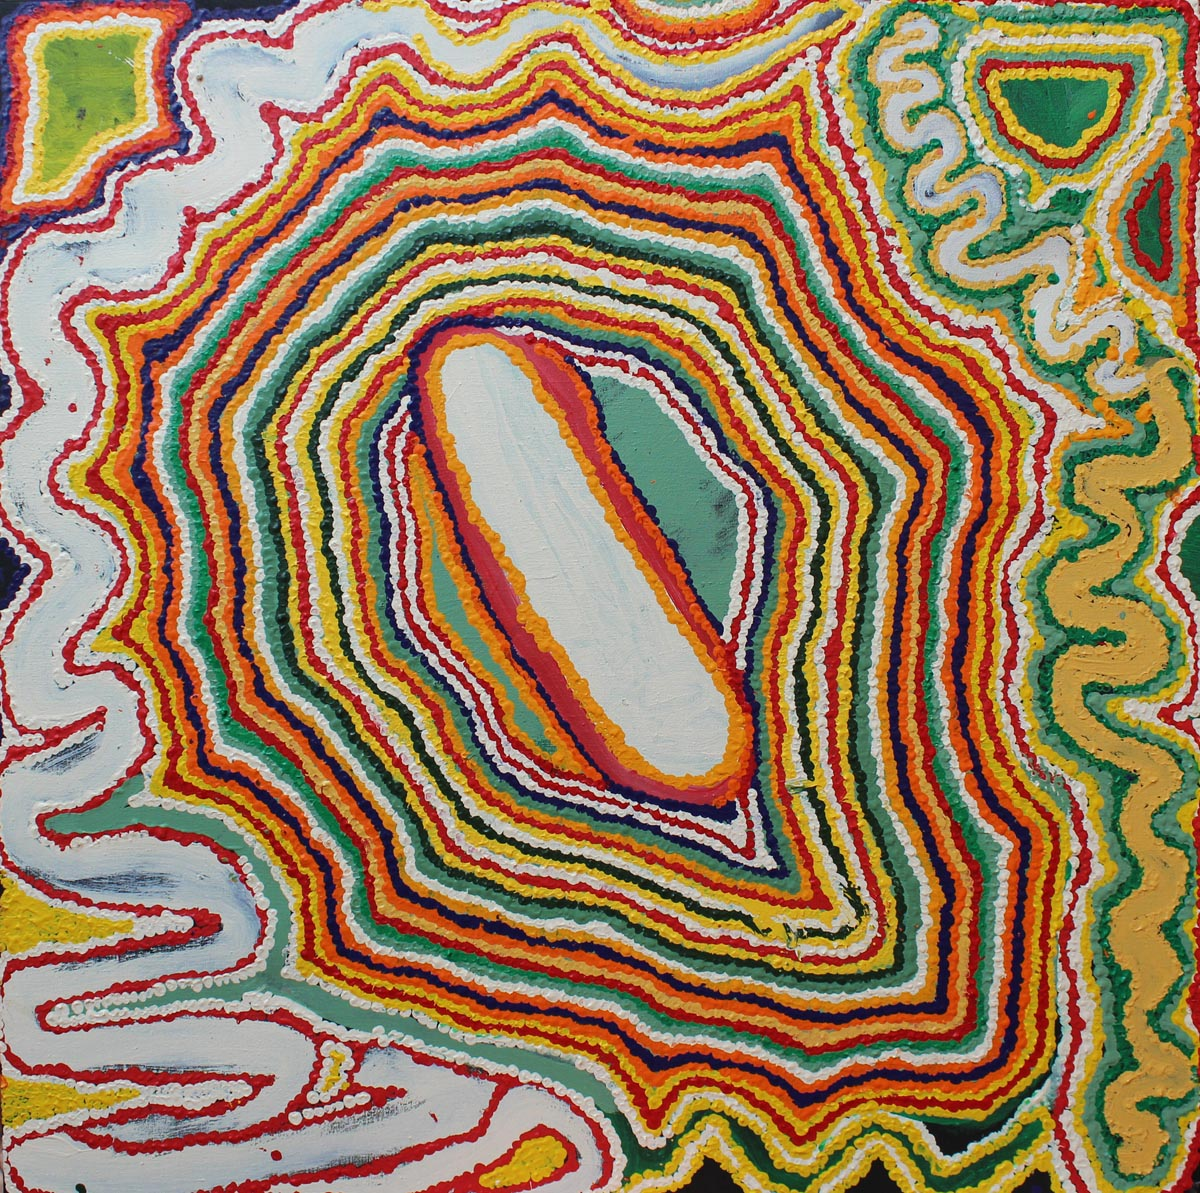 """Jimmy Donegan  Pukara  Acrylic on linen 36"""" x 36"""" (91.5 x 91.5 cm) Catalog #14-186   Price Available upon Request"""